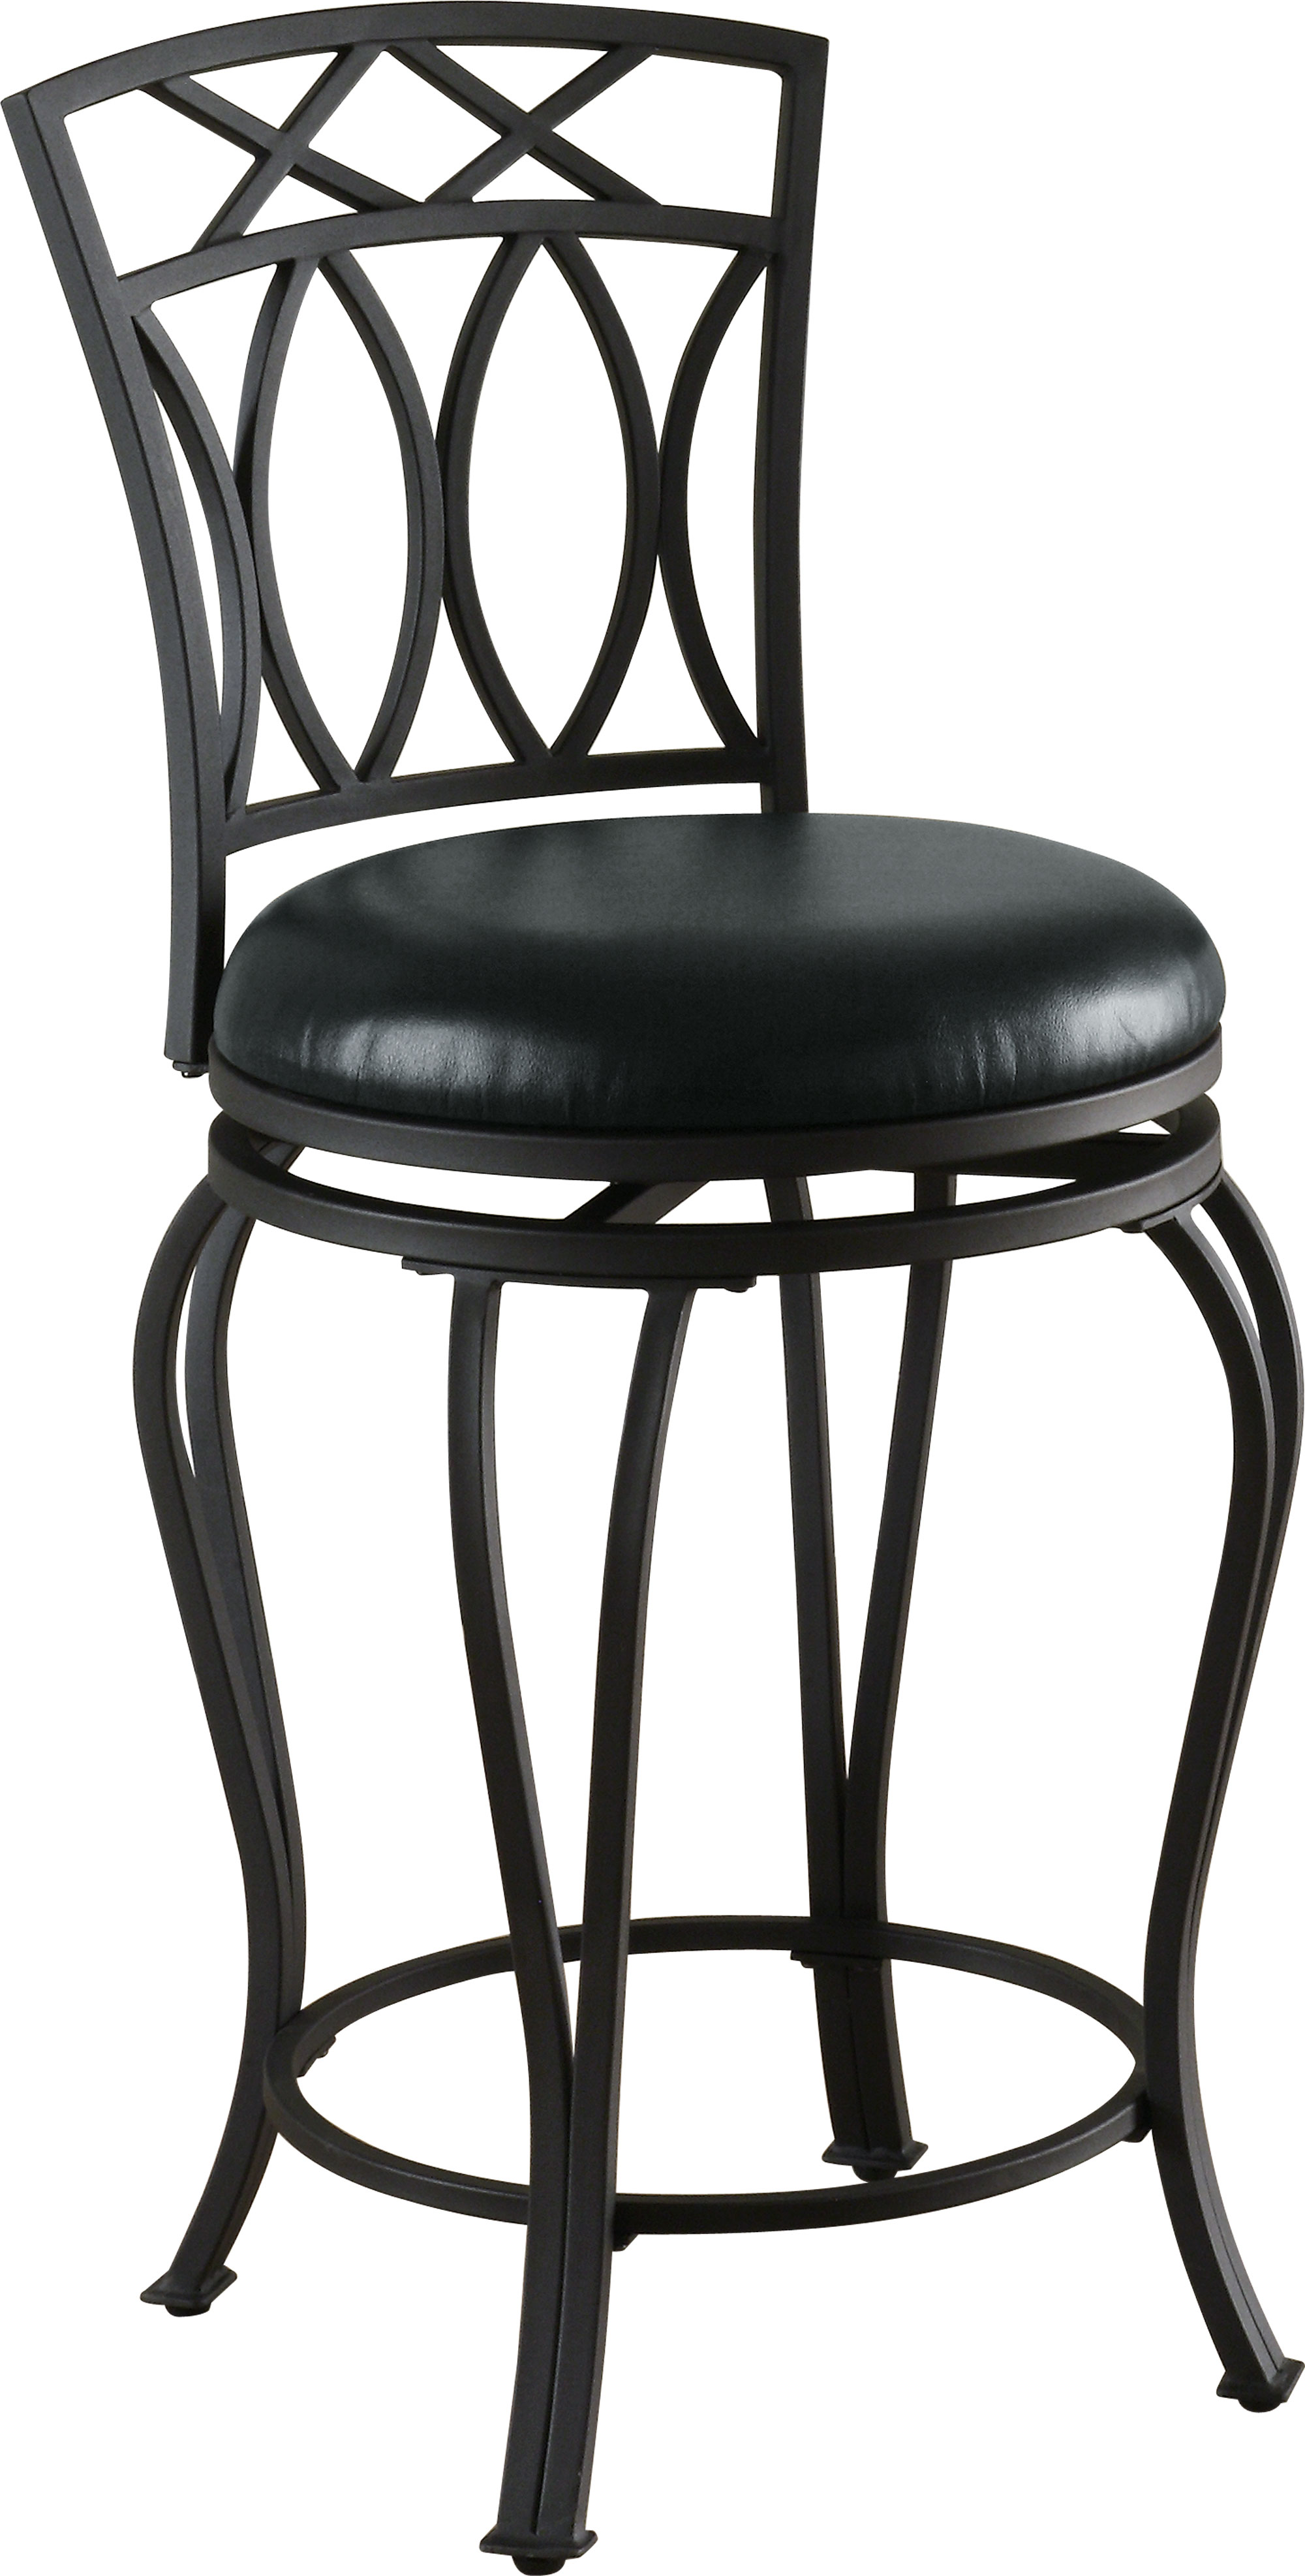 Coaster Furniture Black Metal Swivel Counter Stool The